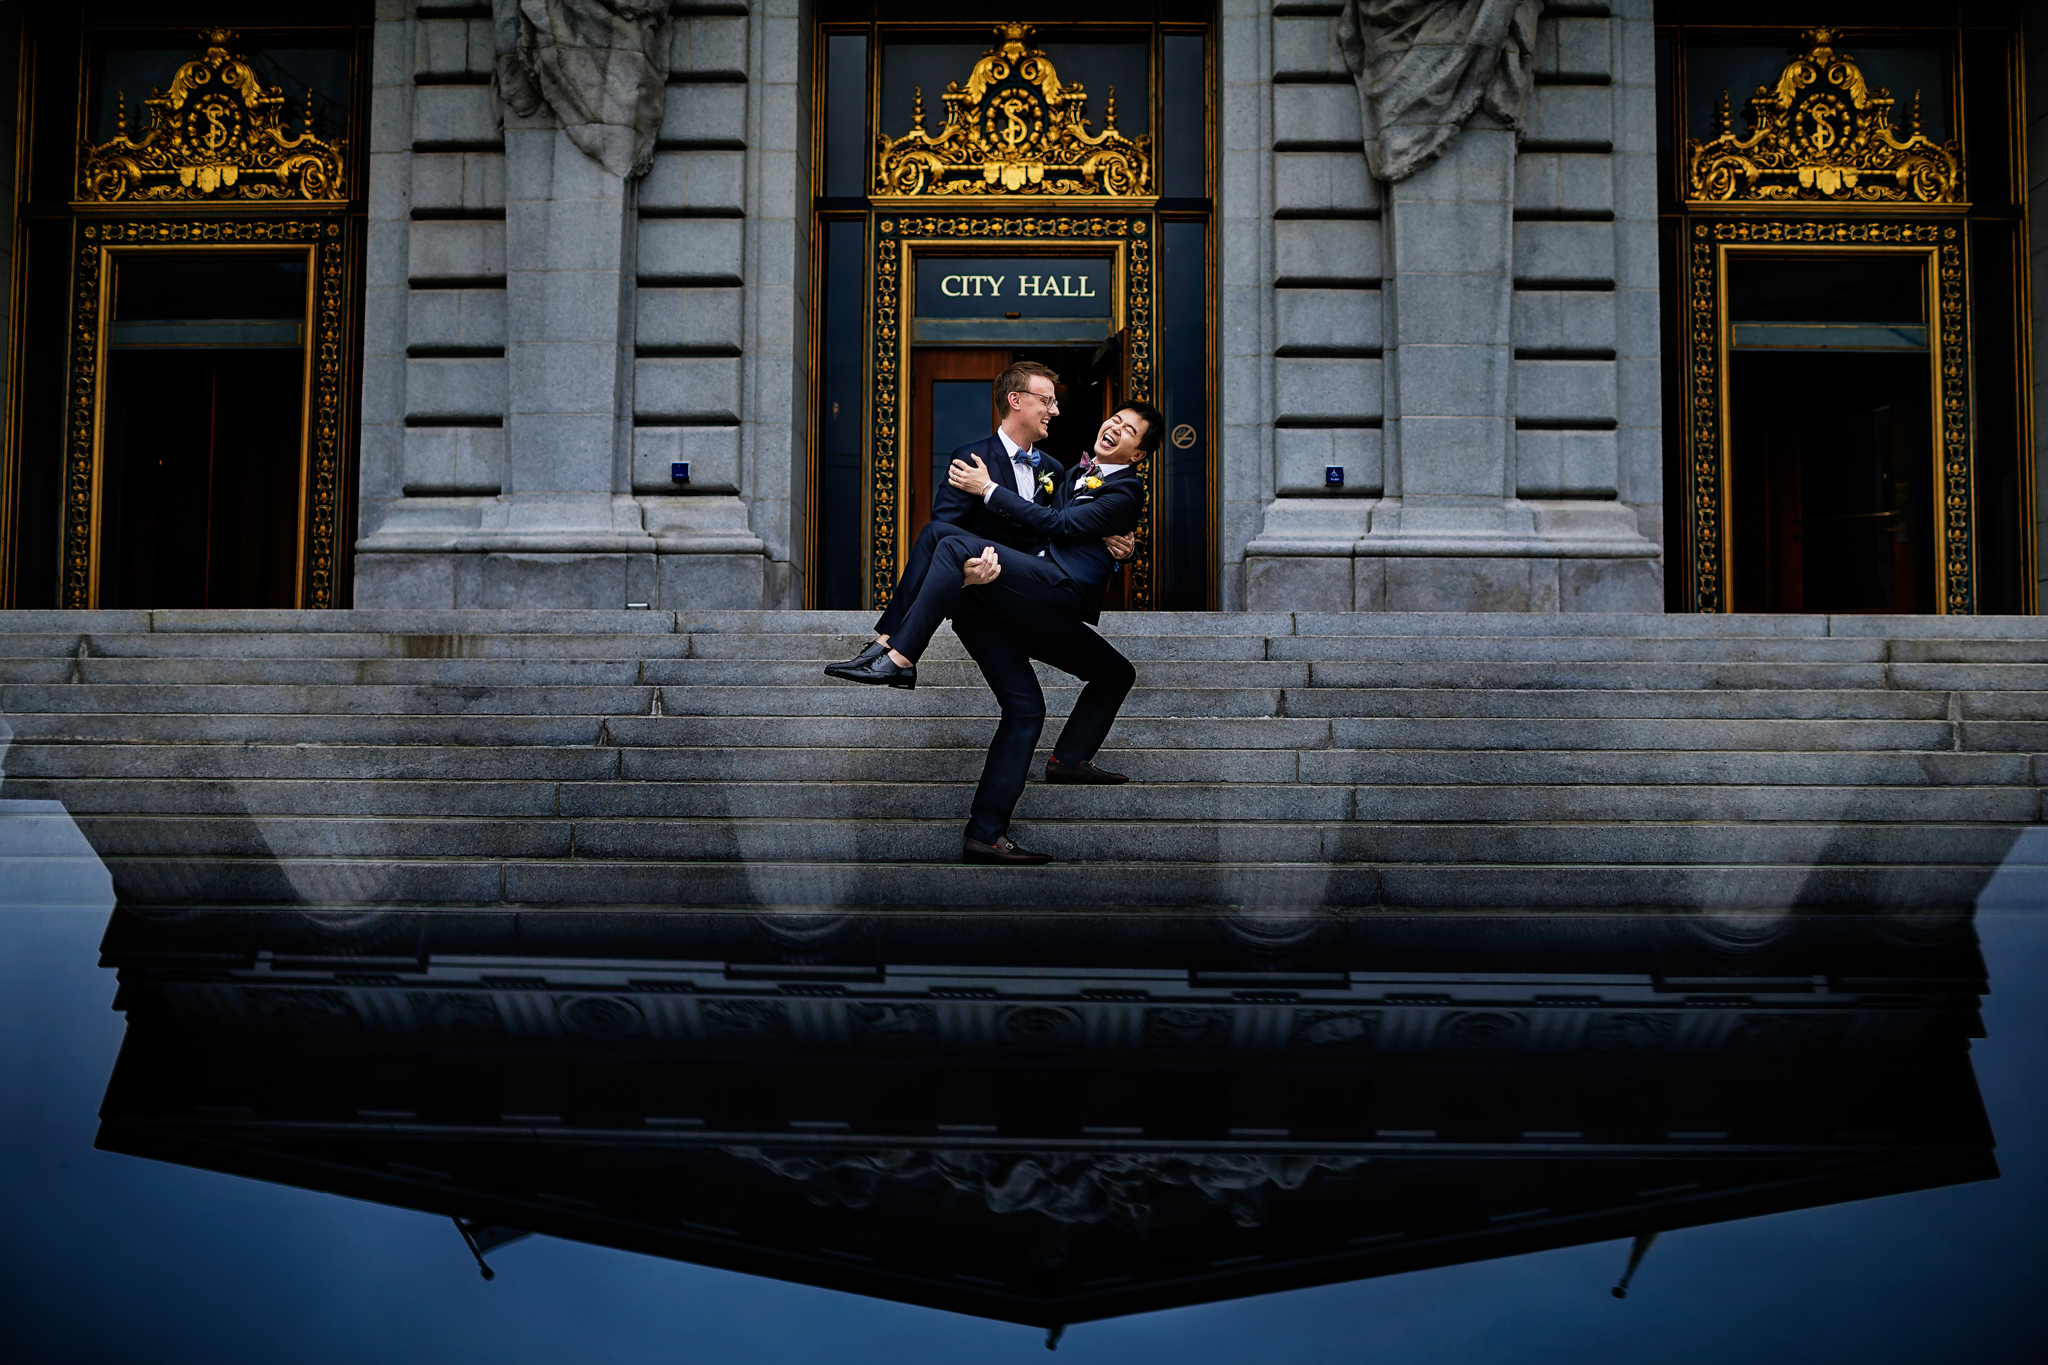 happy-grooms-just-married-at-city-hall-photo-by-chrisman-studios